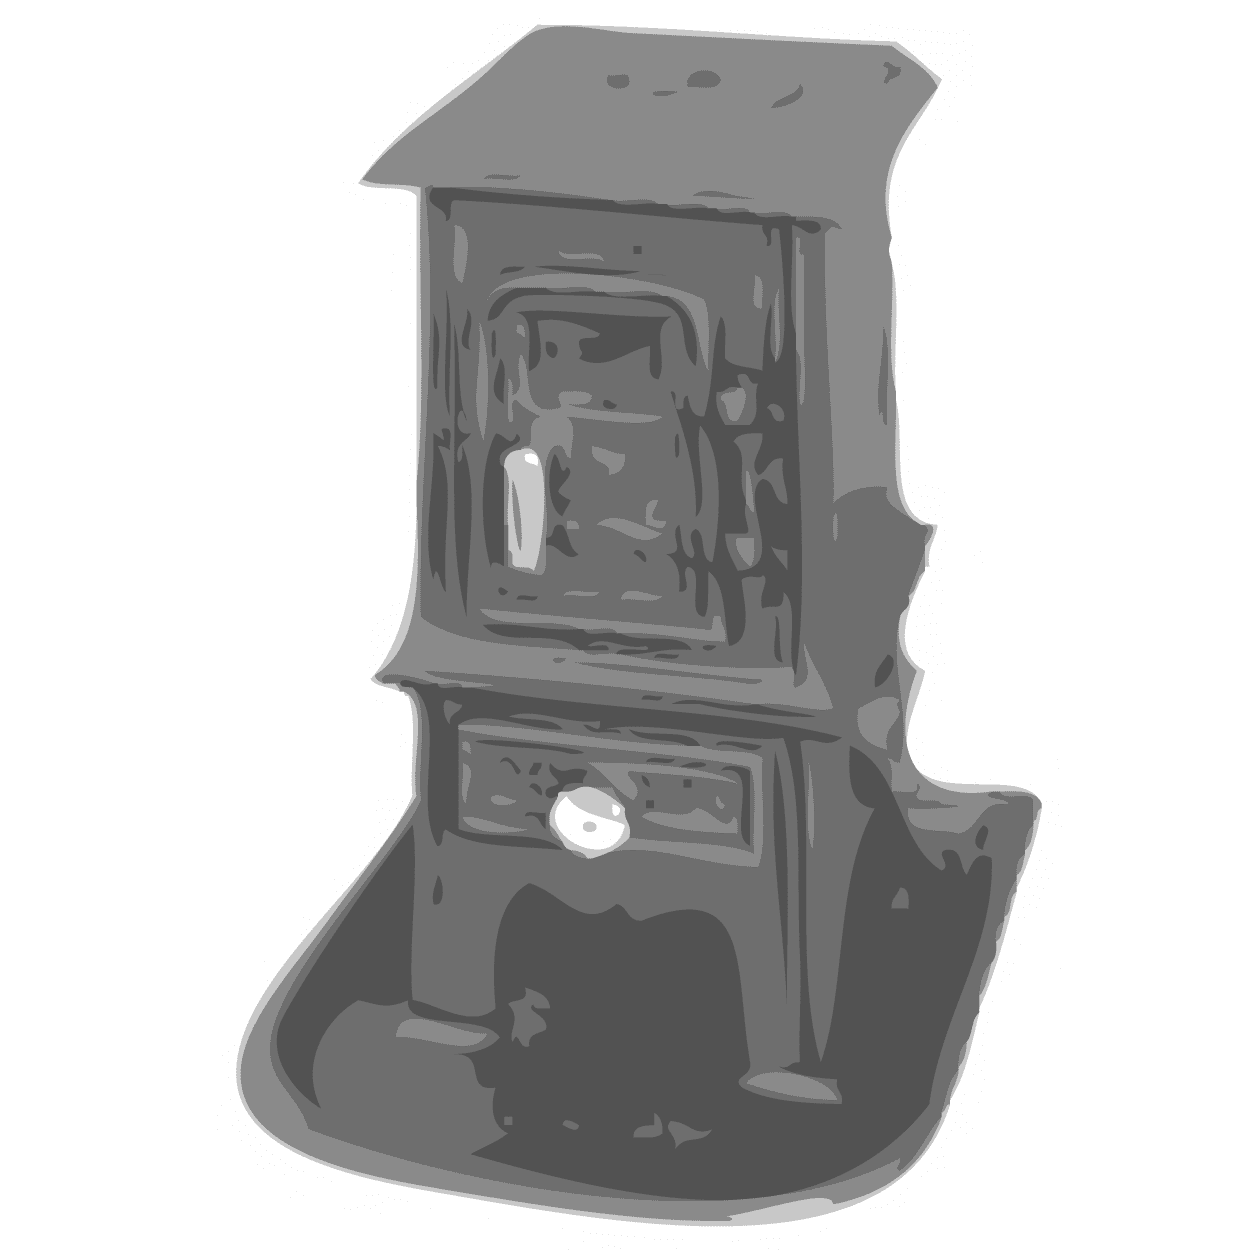 TINY STOVE: The Pipsqueak - SMALL STOVE: The Dwarf 4kw Tiny Wood Stove